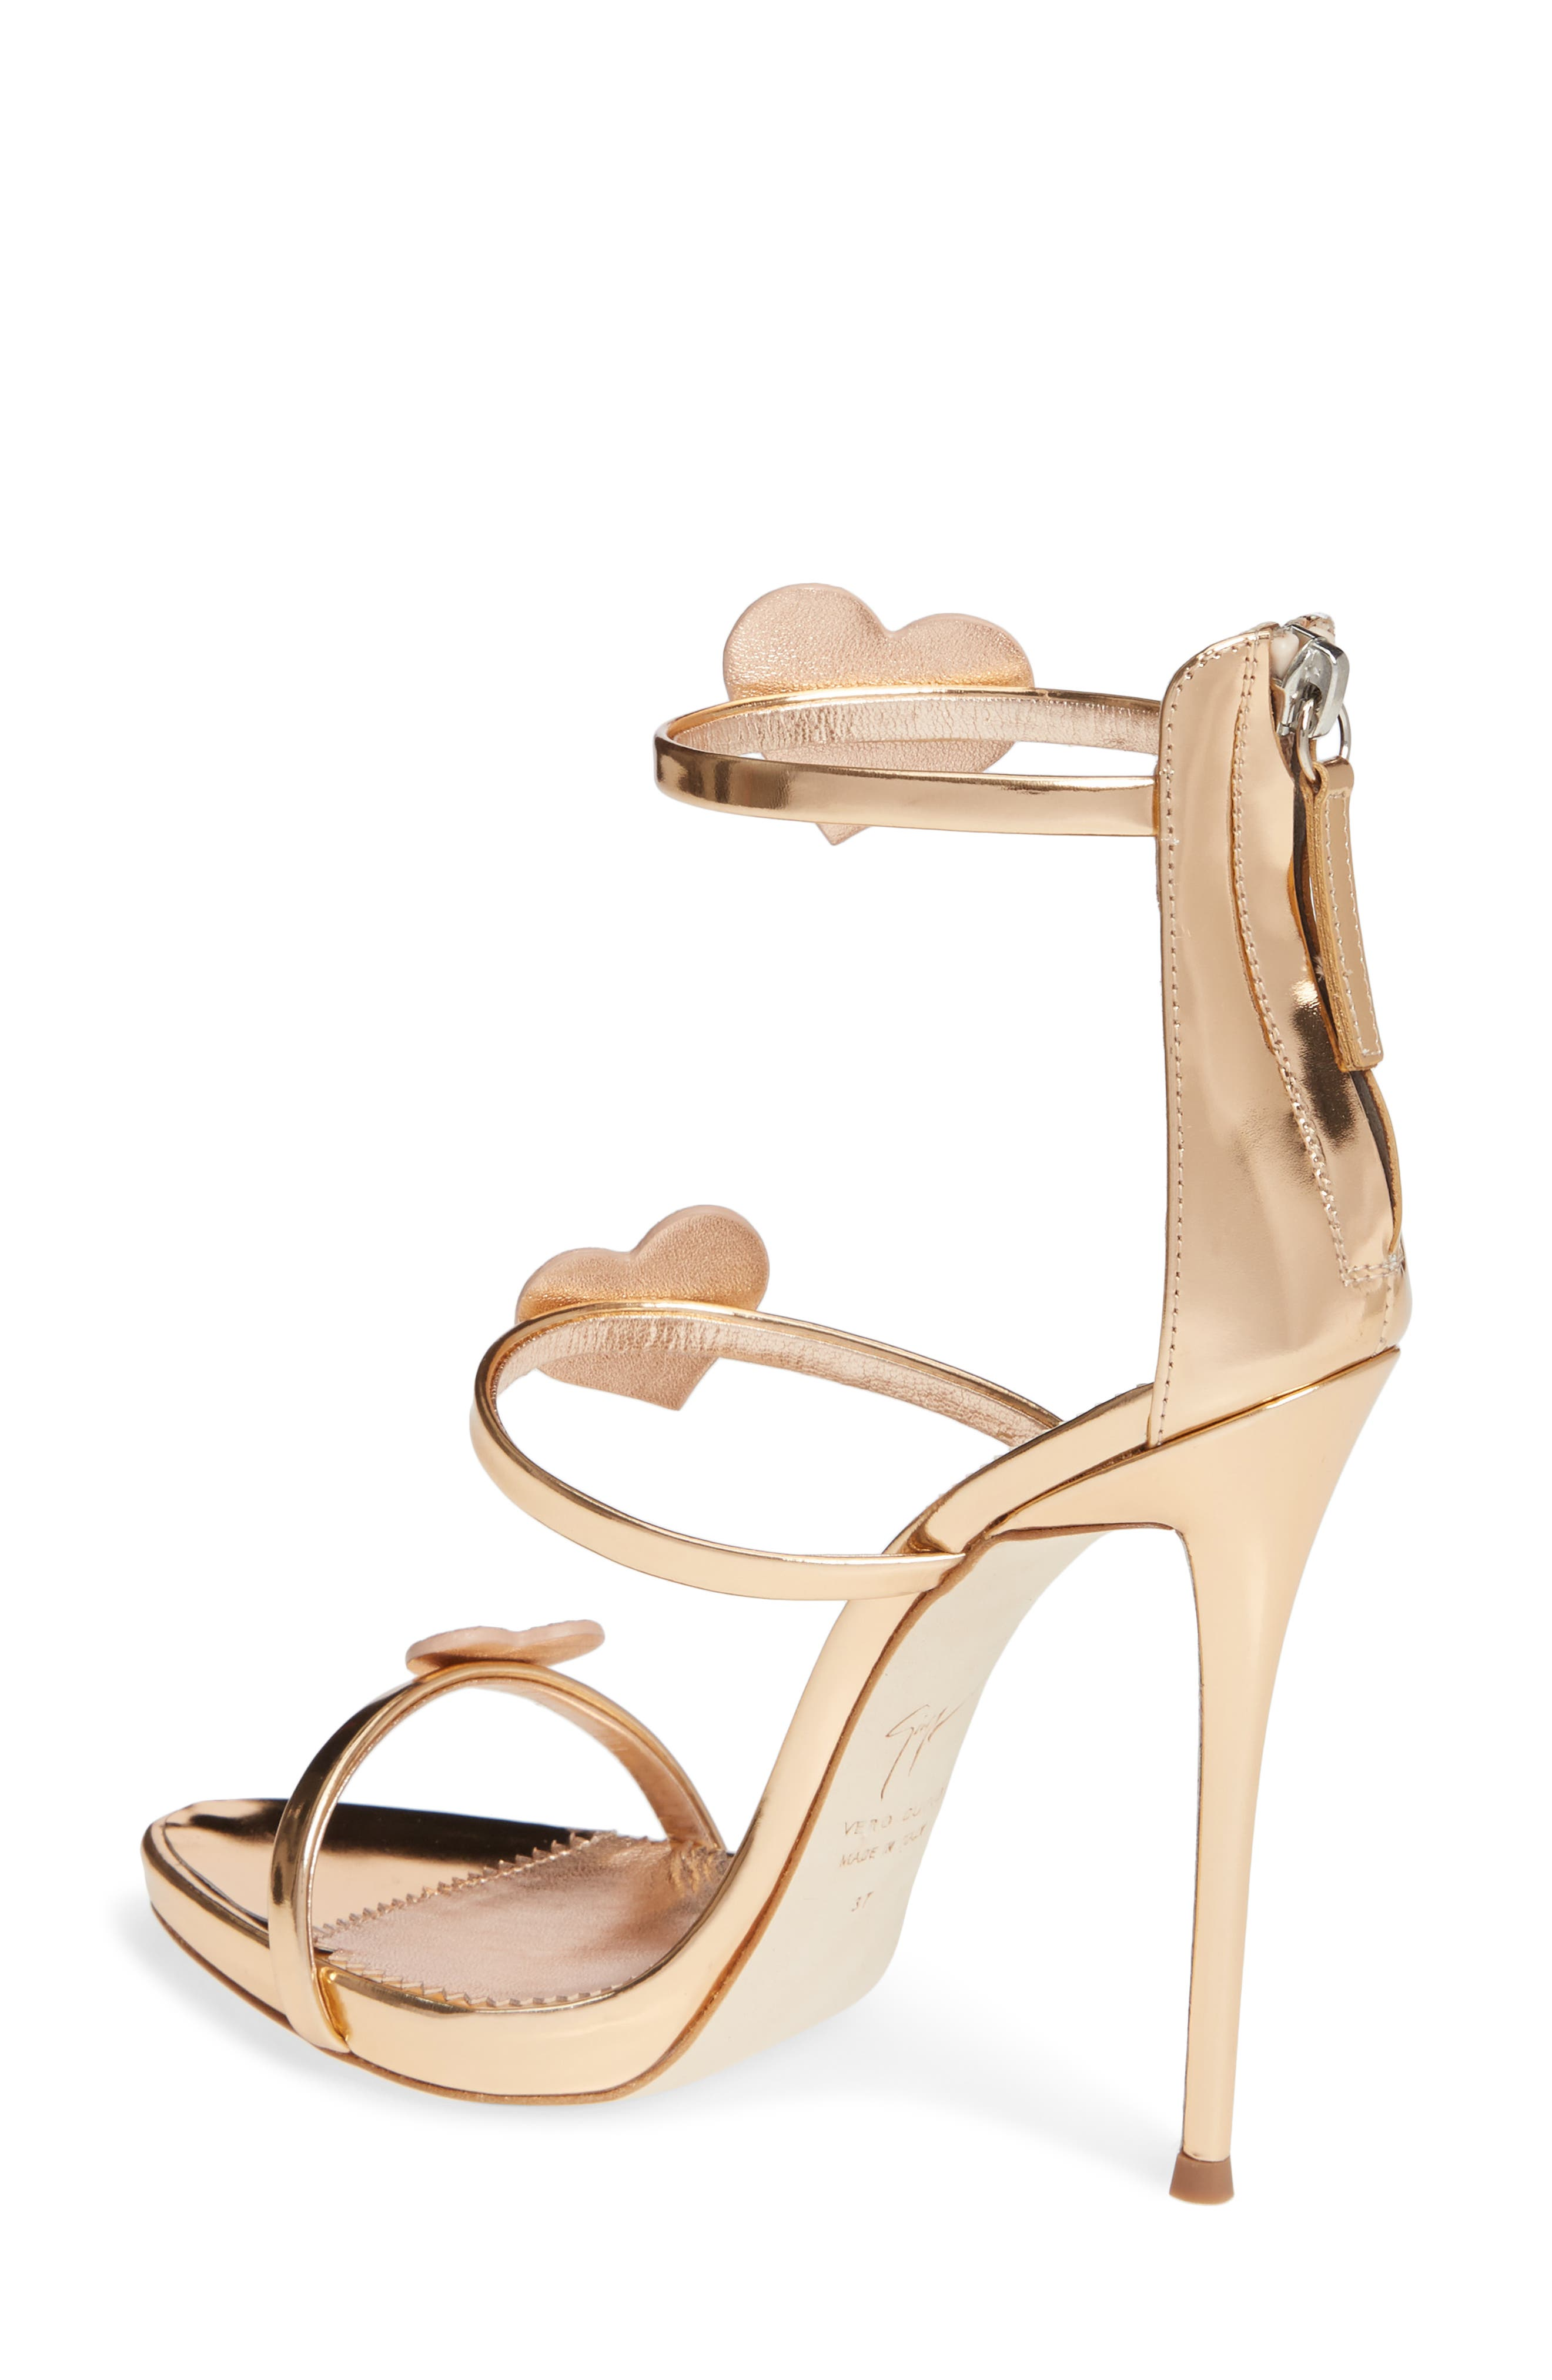 Triple Heart Strappy Sandal,                             Alternate thumbnail 2, color,                             ROSE GOLD